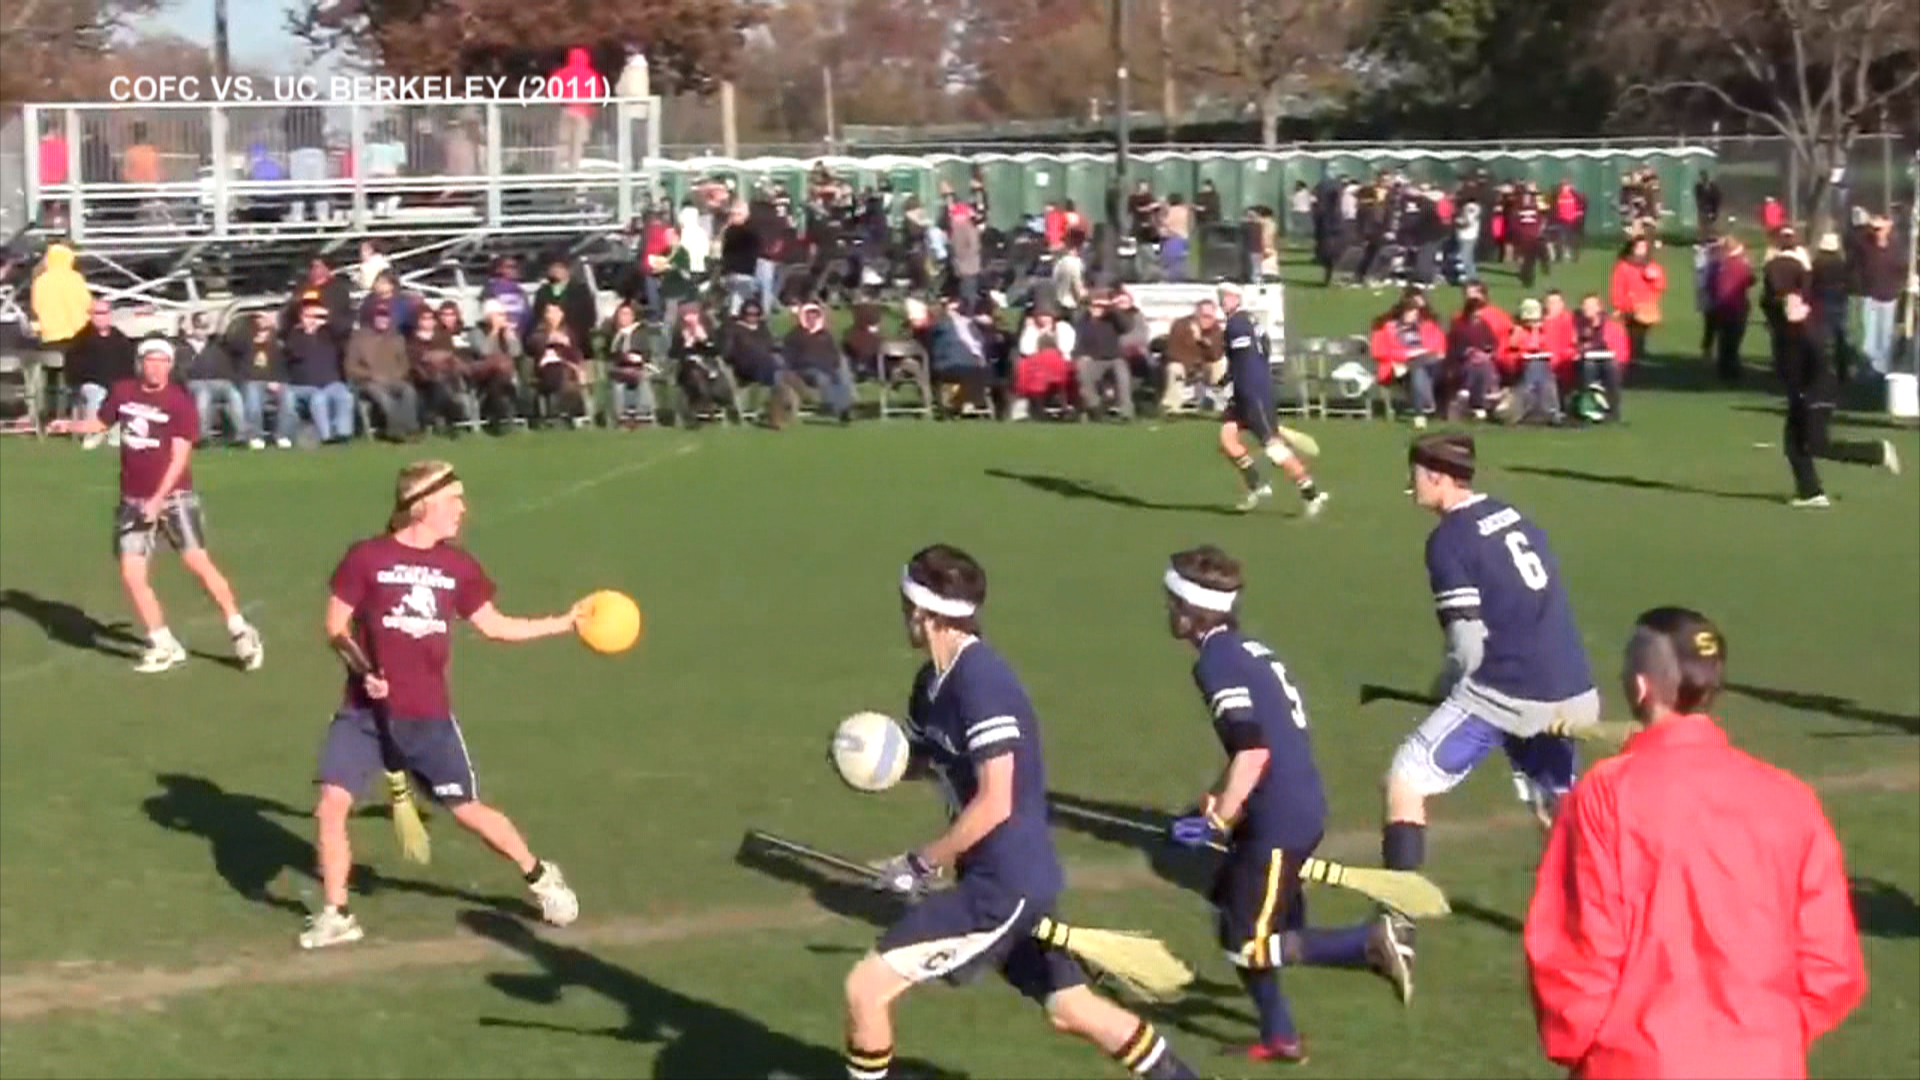 Quidditch leads campus gender-integration